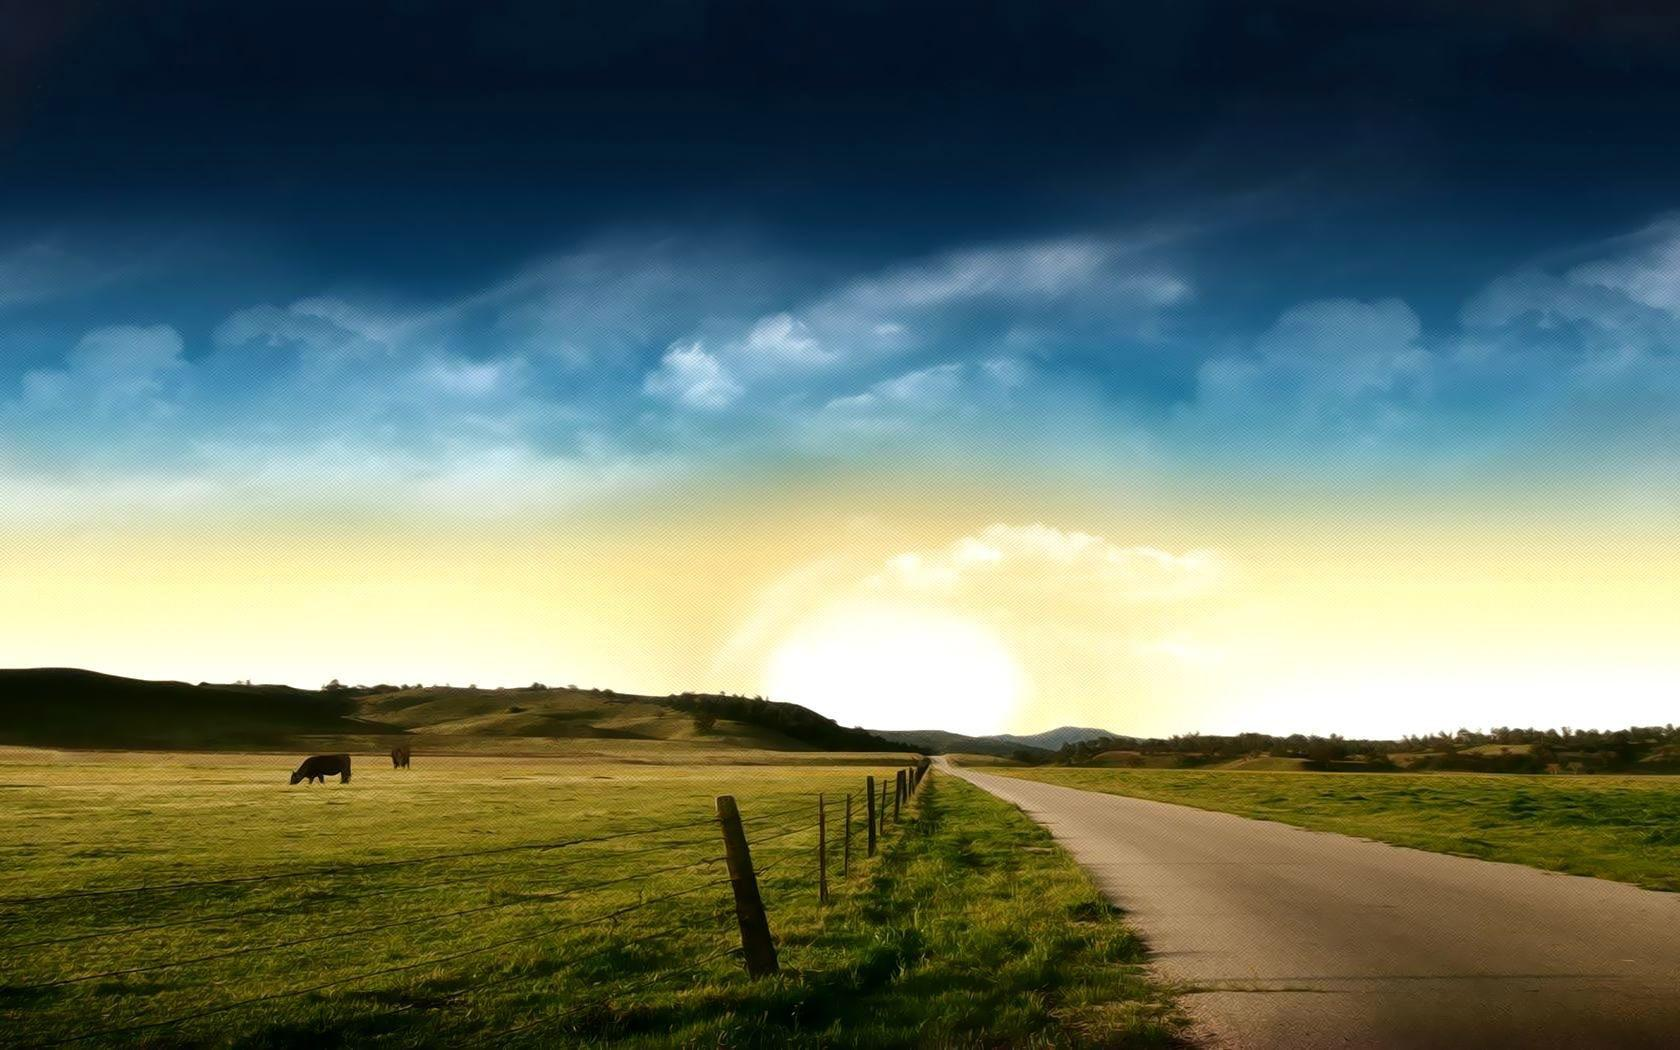 The prairie landscape photography wallpaper Desktop Background ...